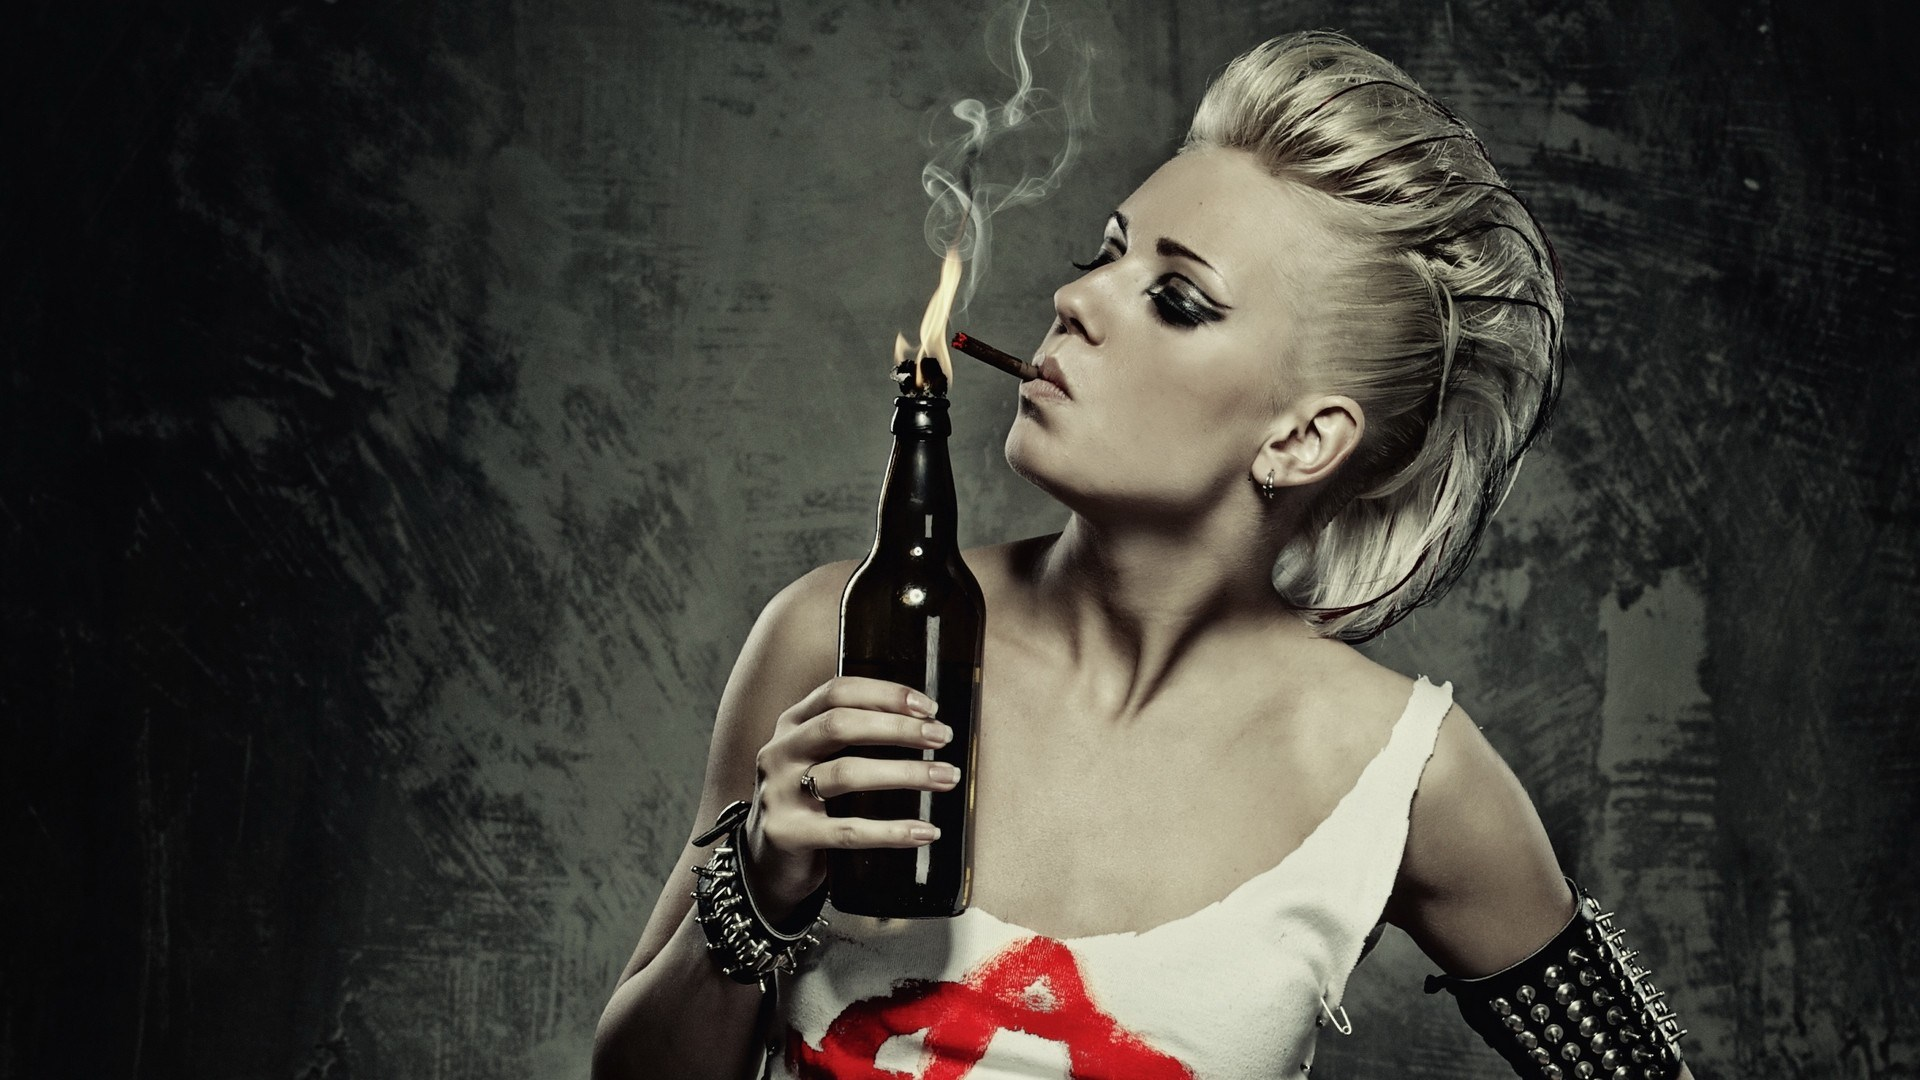 Humor Gamer Punk-girl-smoking-molotov-cocktail-wallpaper-1920x1080